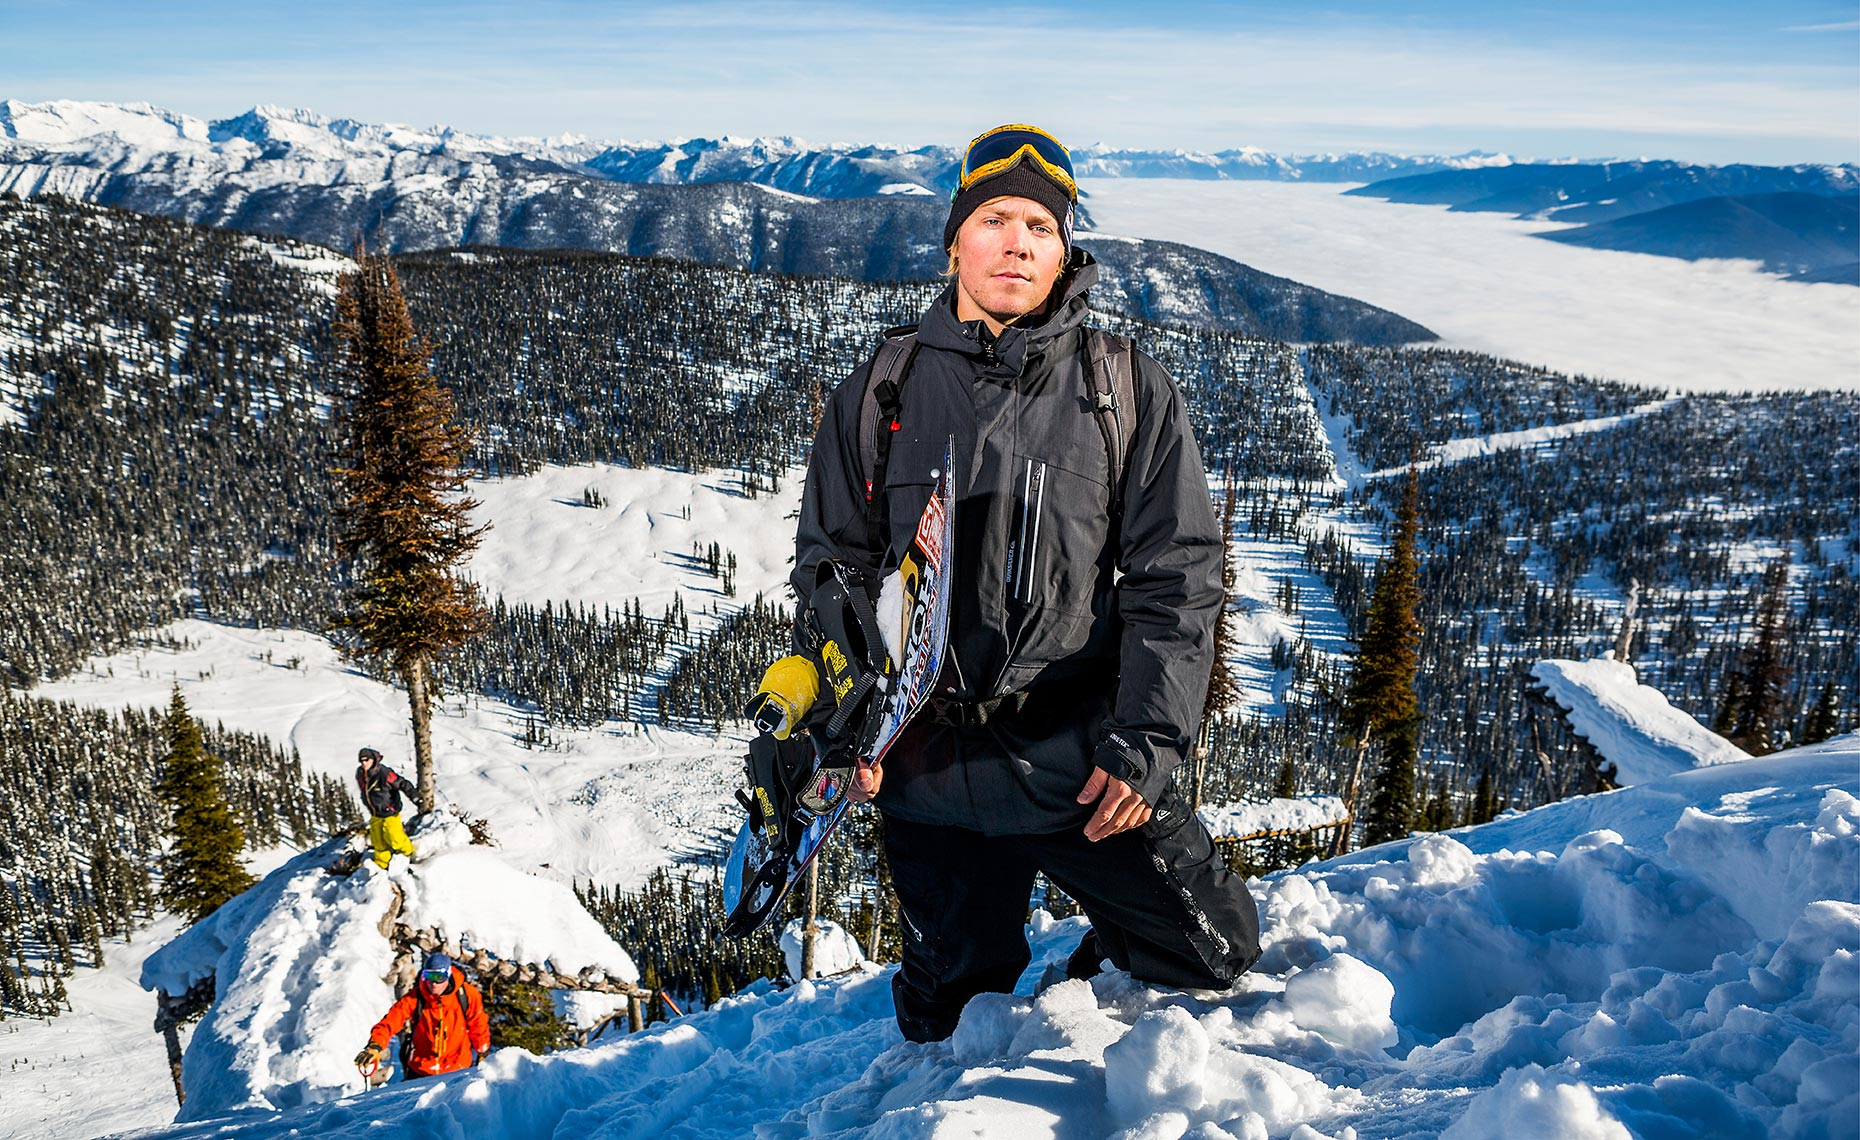 02_Travis_Rice_Ultra_Natural_Baldface_BC_Canada_Red_Bull_Portrait_Lifestyle_Chris_Wellhausen_Photography.JPG